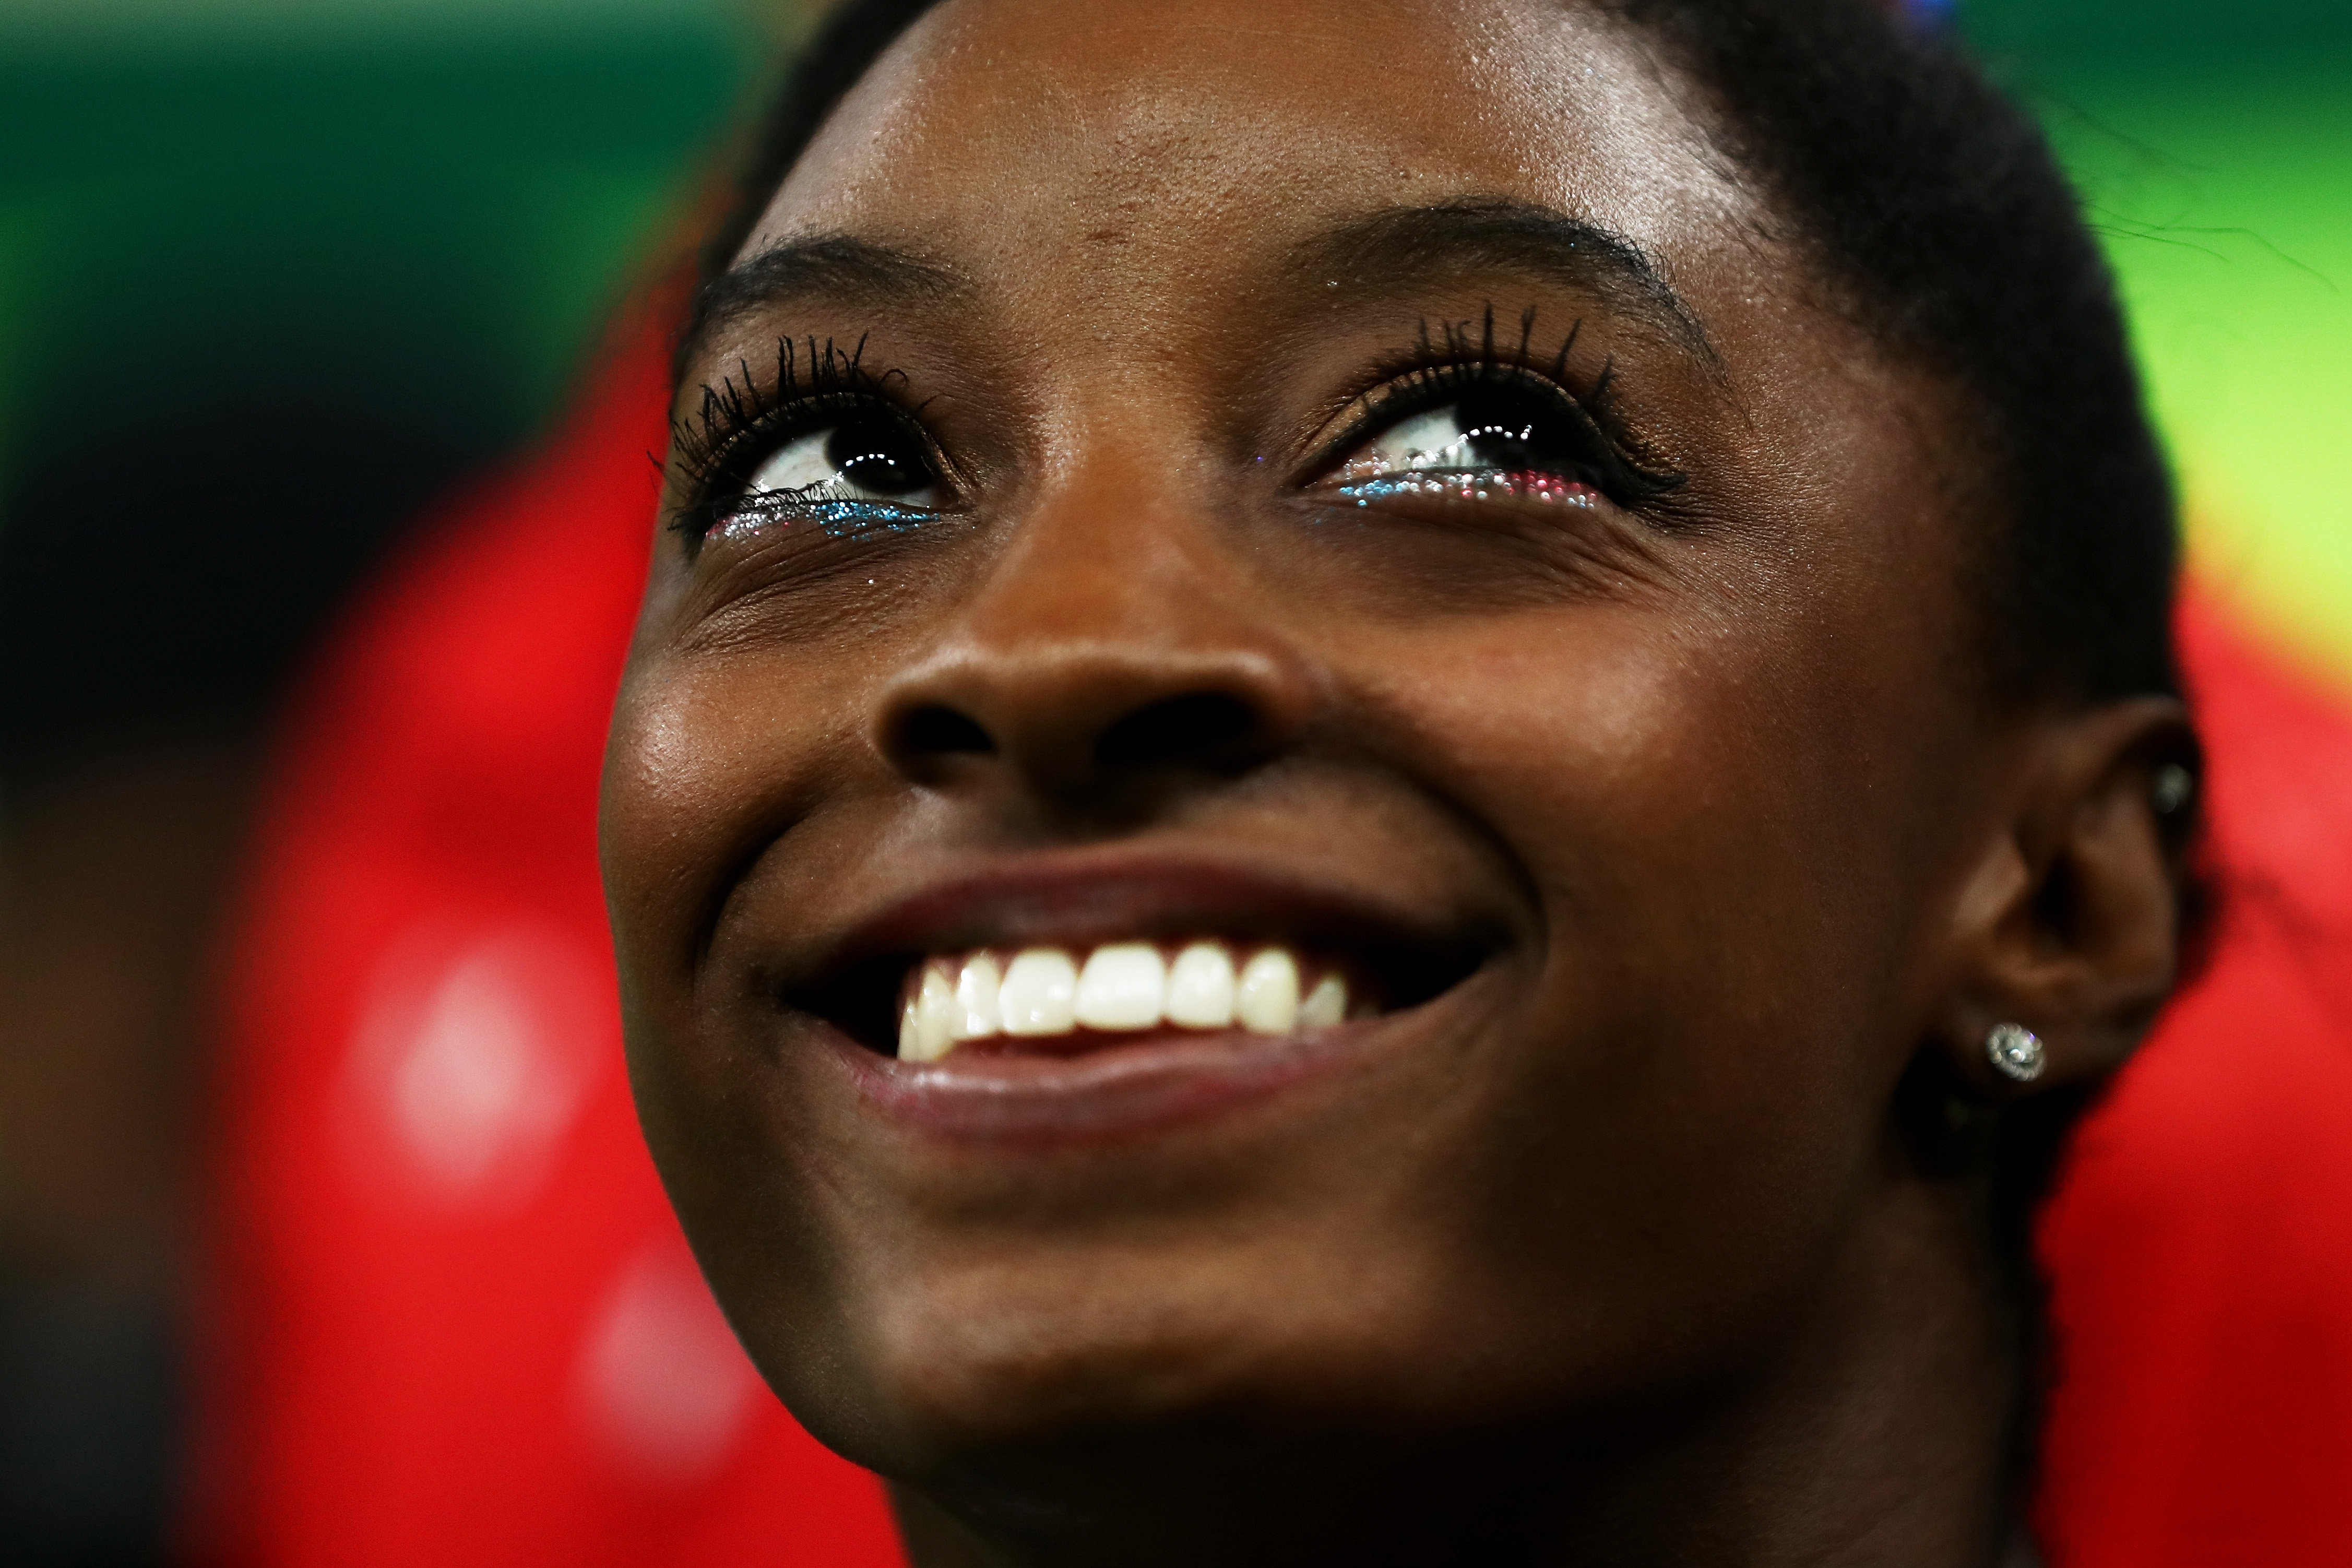 during the Artistic Gymnastics Women's Team Final on Day 4 of the Rio 2016 Olympic Games at the Rio Olympic Arena on August 9, 2016 in Rio de Janeiro, Brazil.